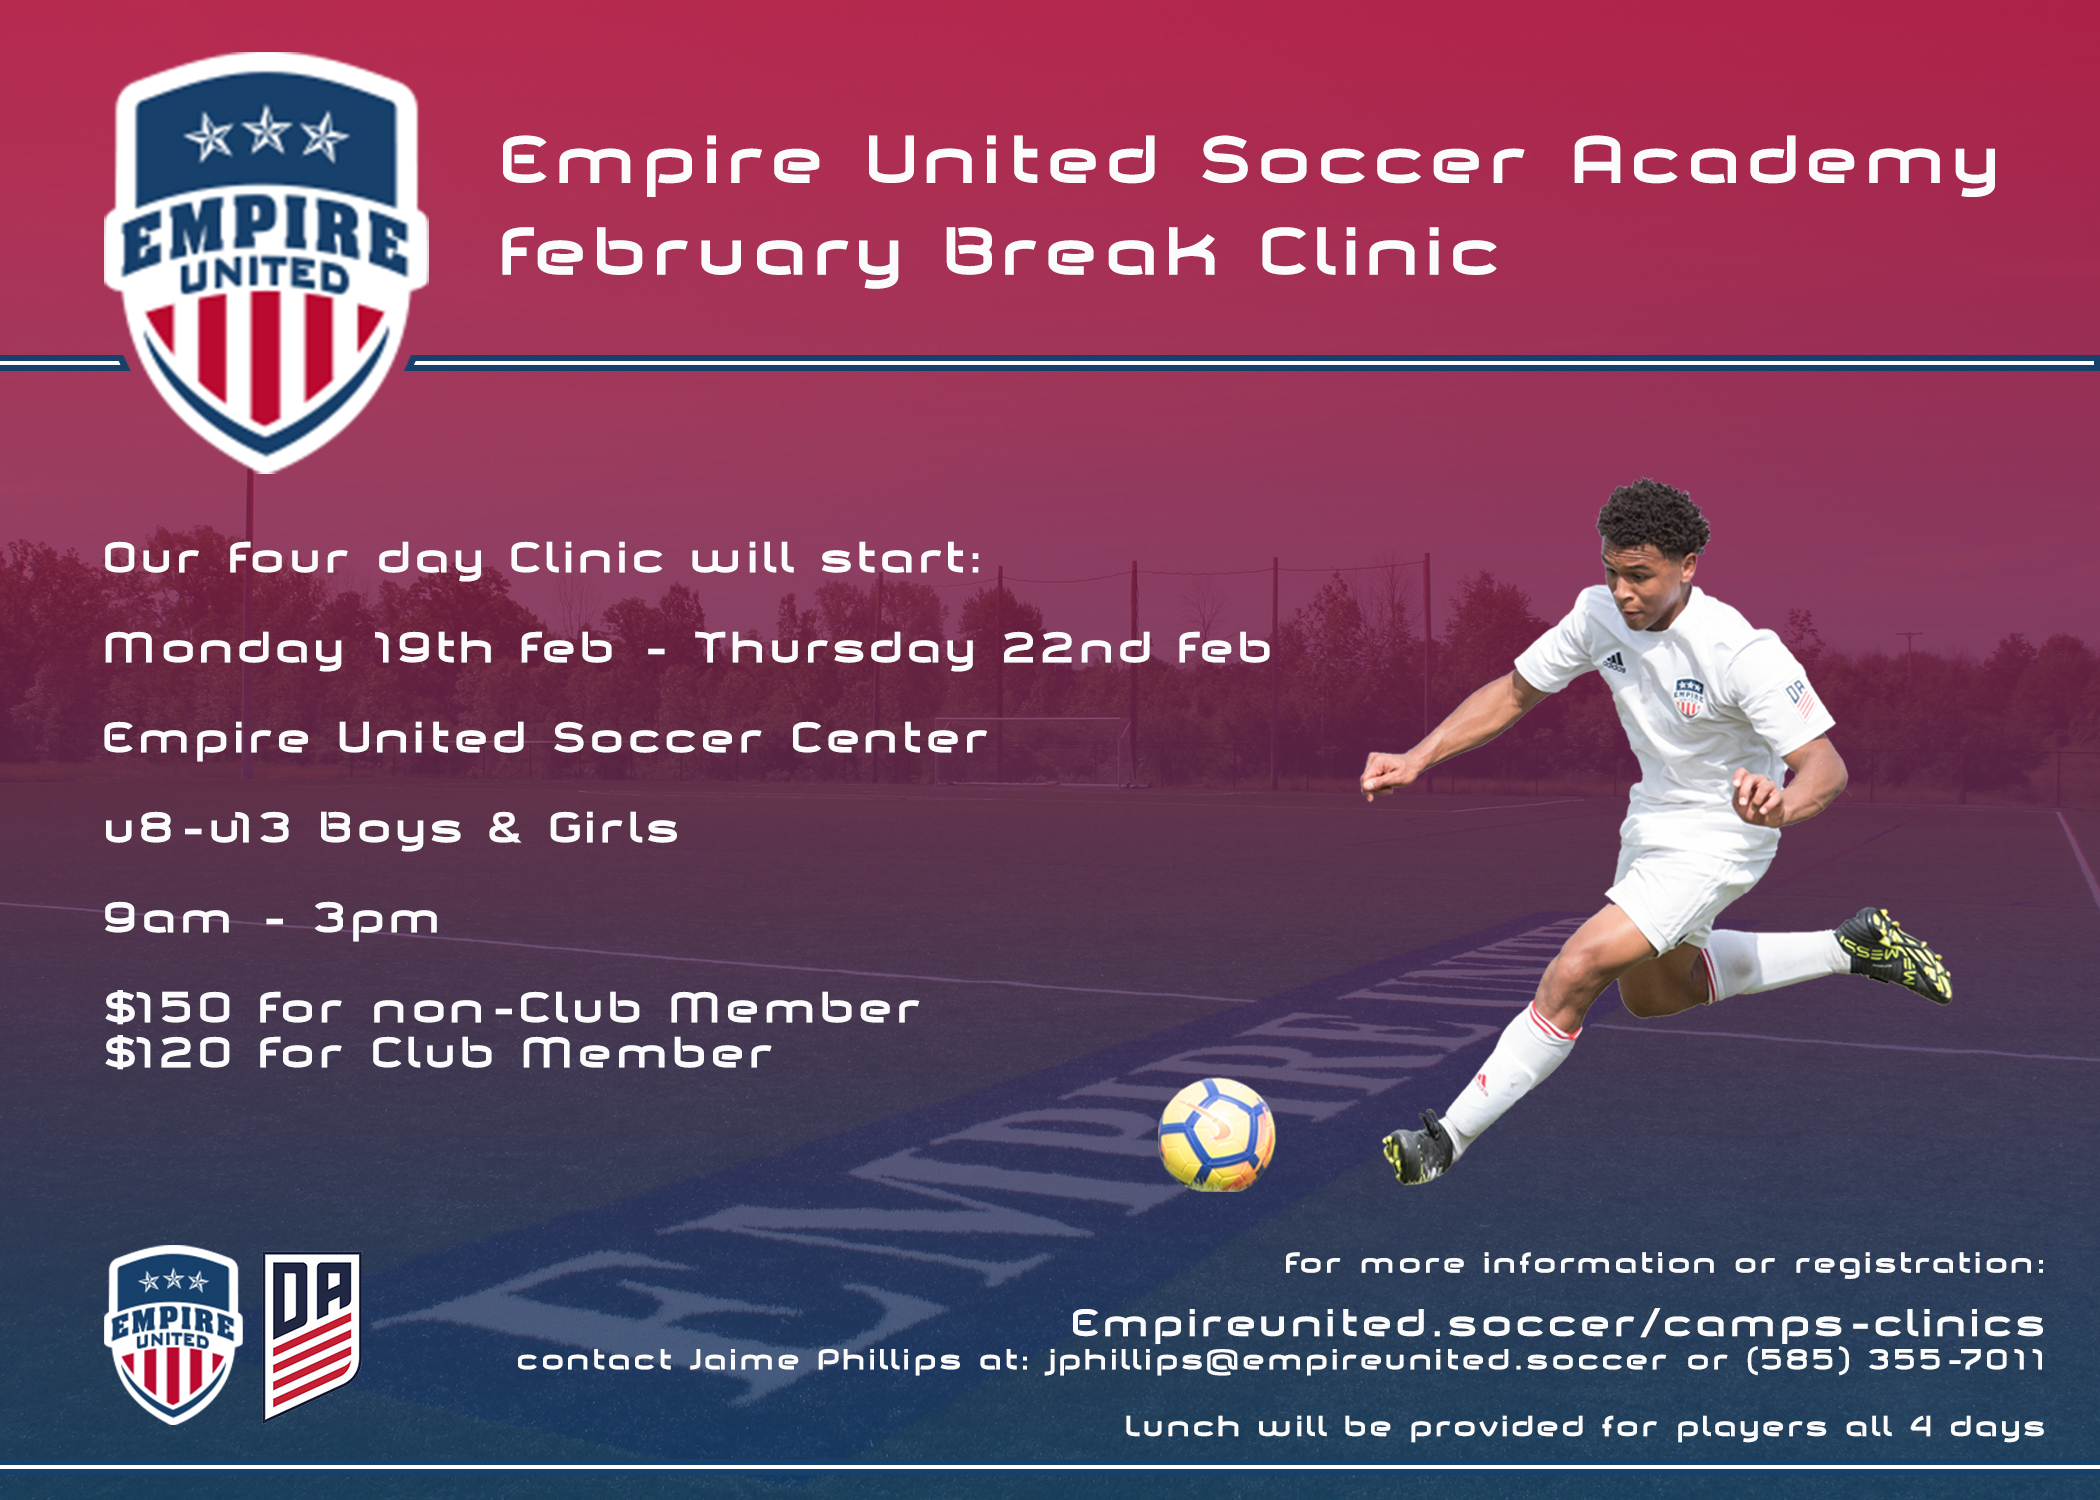 Empire United Soccer Academy February Break Clinic